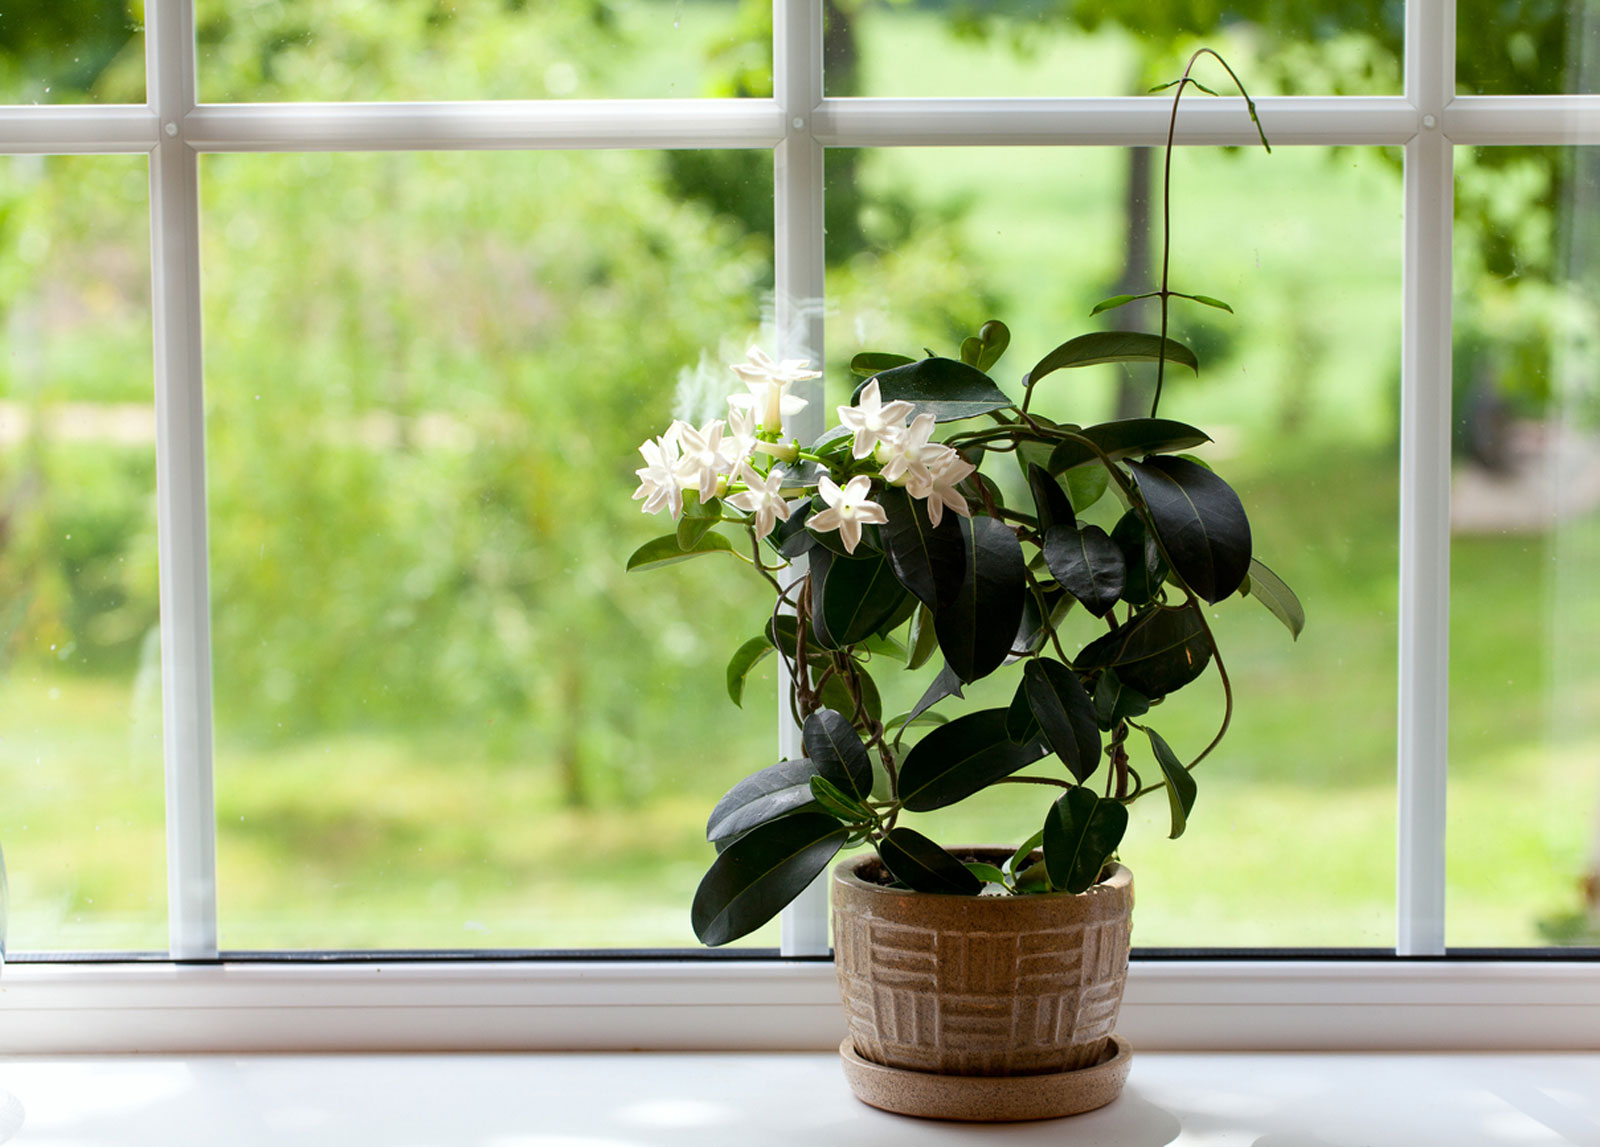 Jasmine Flowers How To Care For A Jasmine Houseplant,What A Beautiful Name Piano Sheet Music Easy